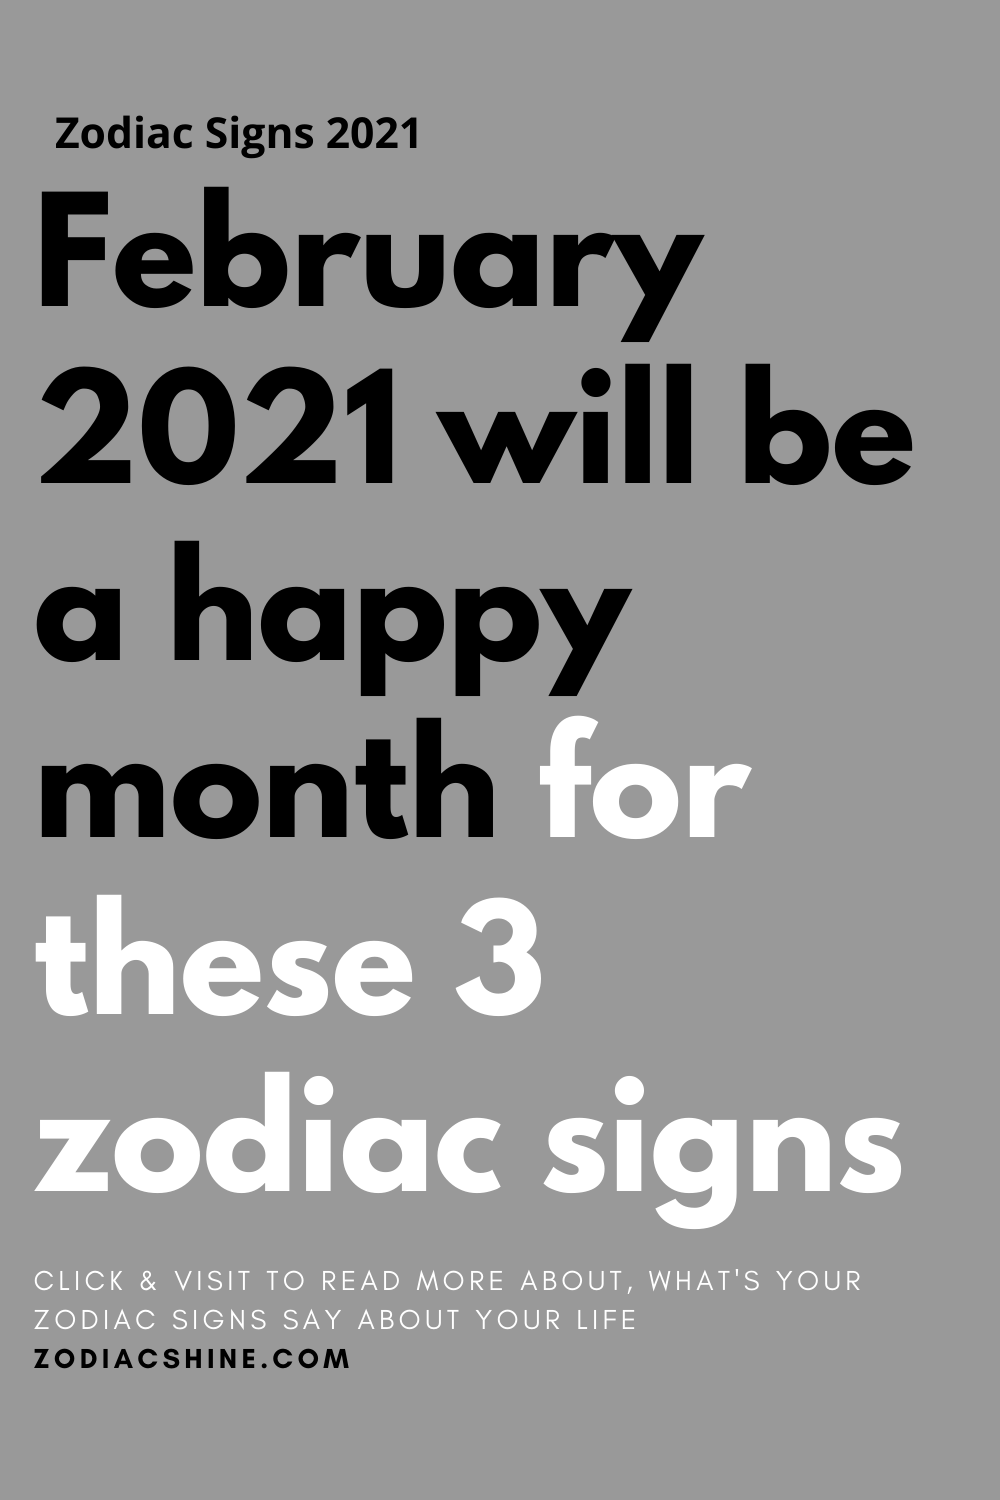 February 2021 will be a happy month for these 3 zodiac signs